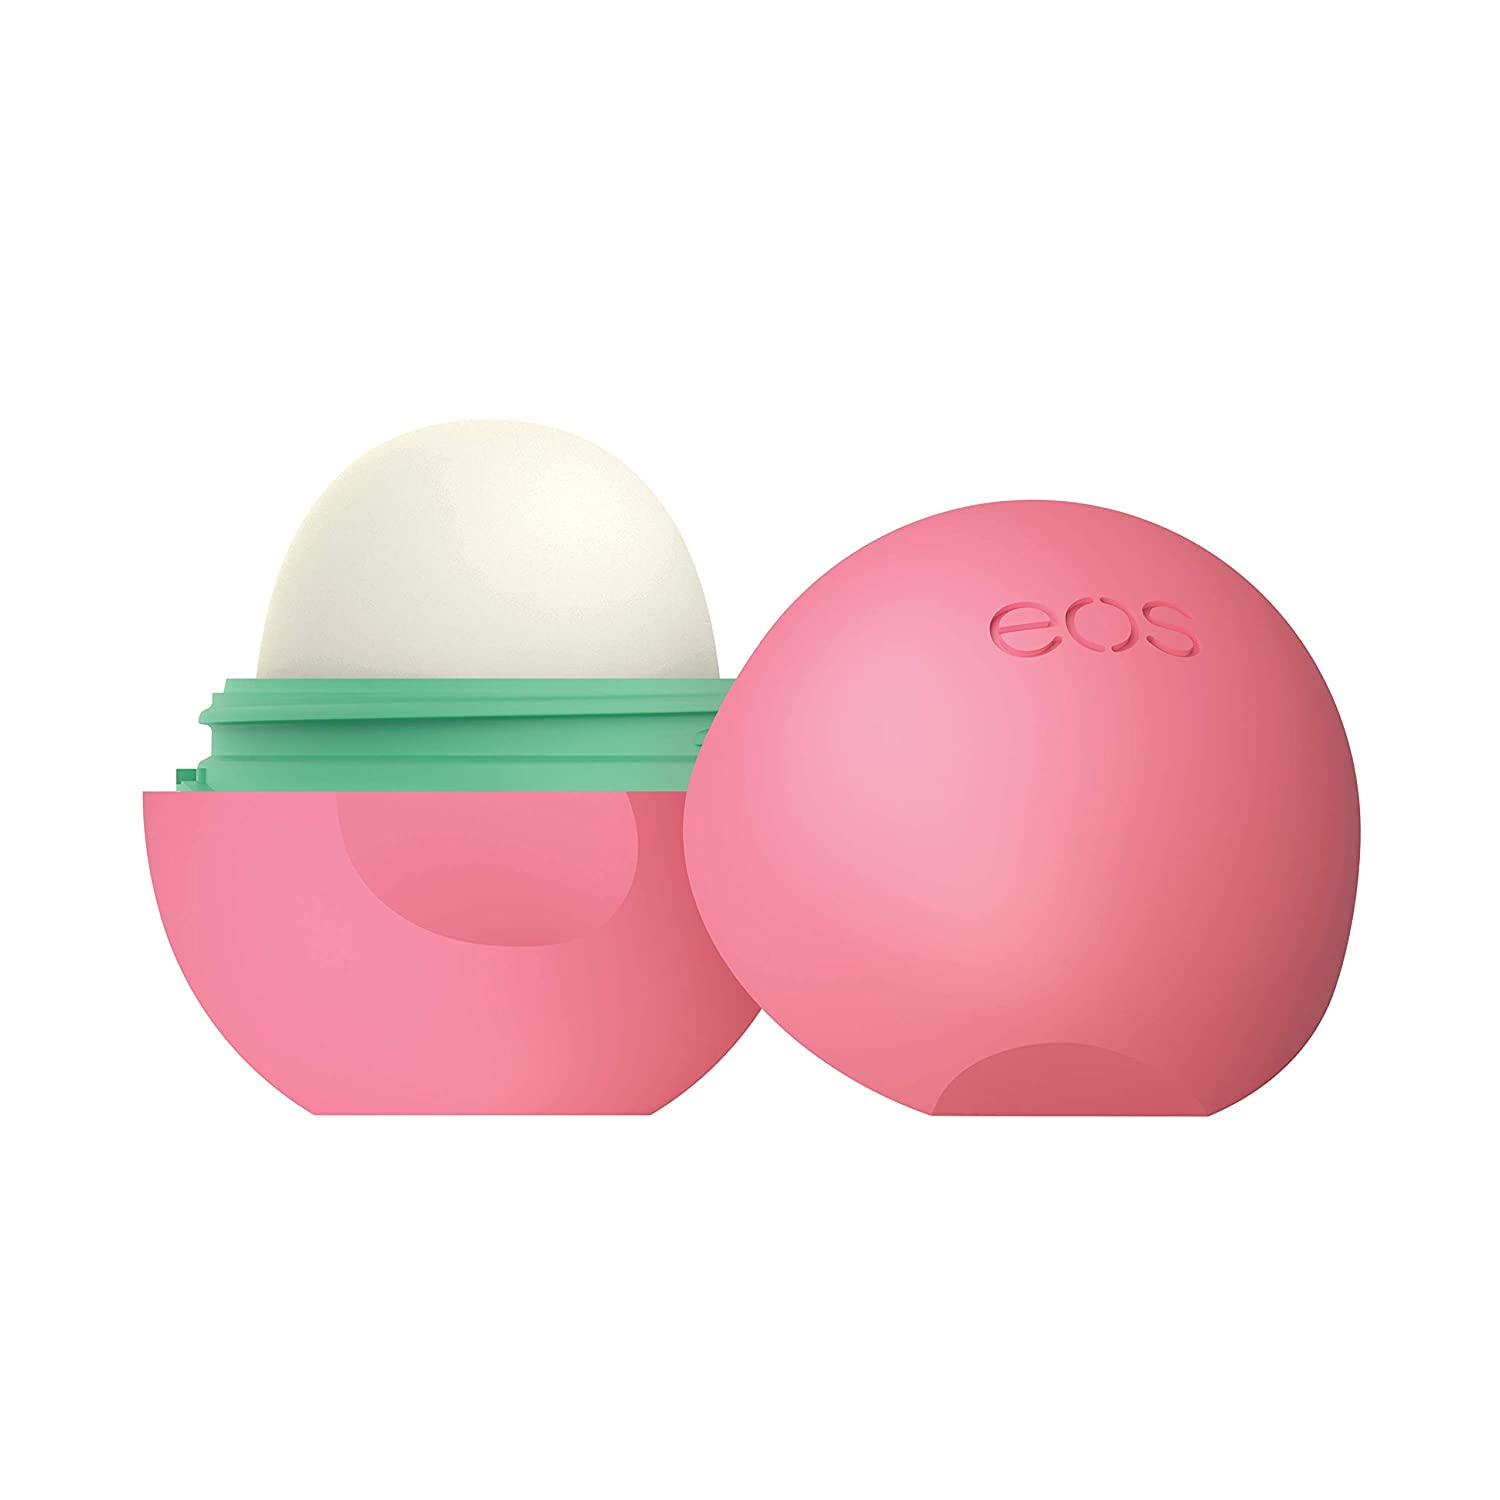 Eos Natural Organic Sphere Lip Balm Strawberry Sorbet Certified Organic 100 Natural Deeply Hydrates And Seals In Moisture 0 25 Oz